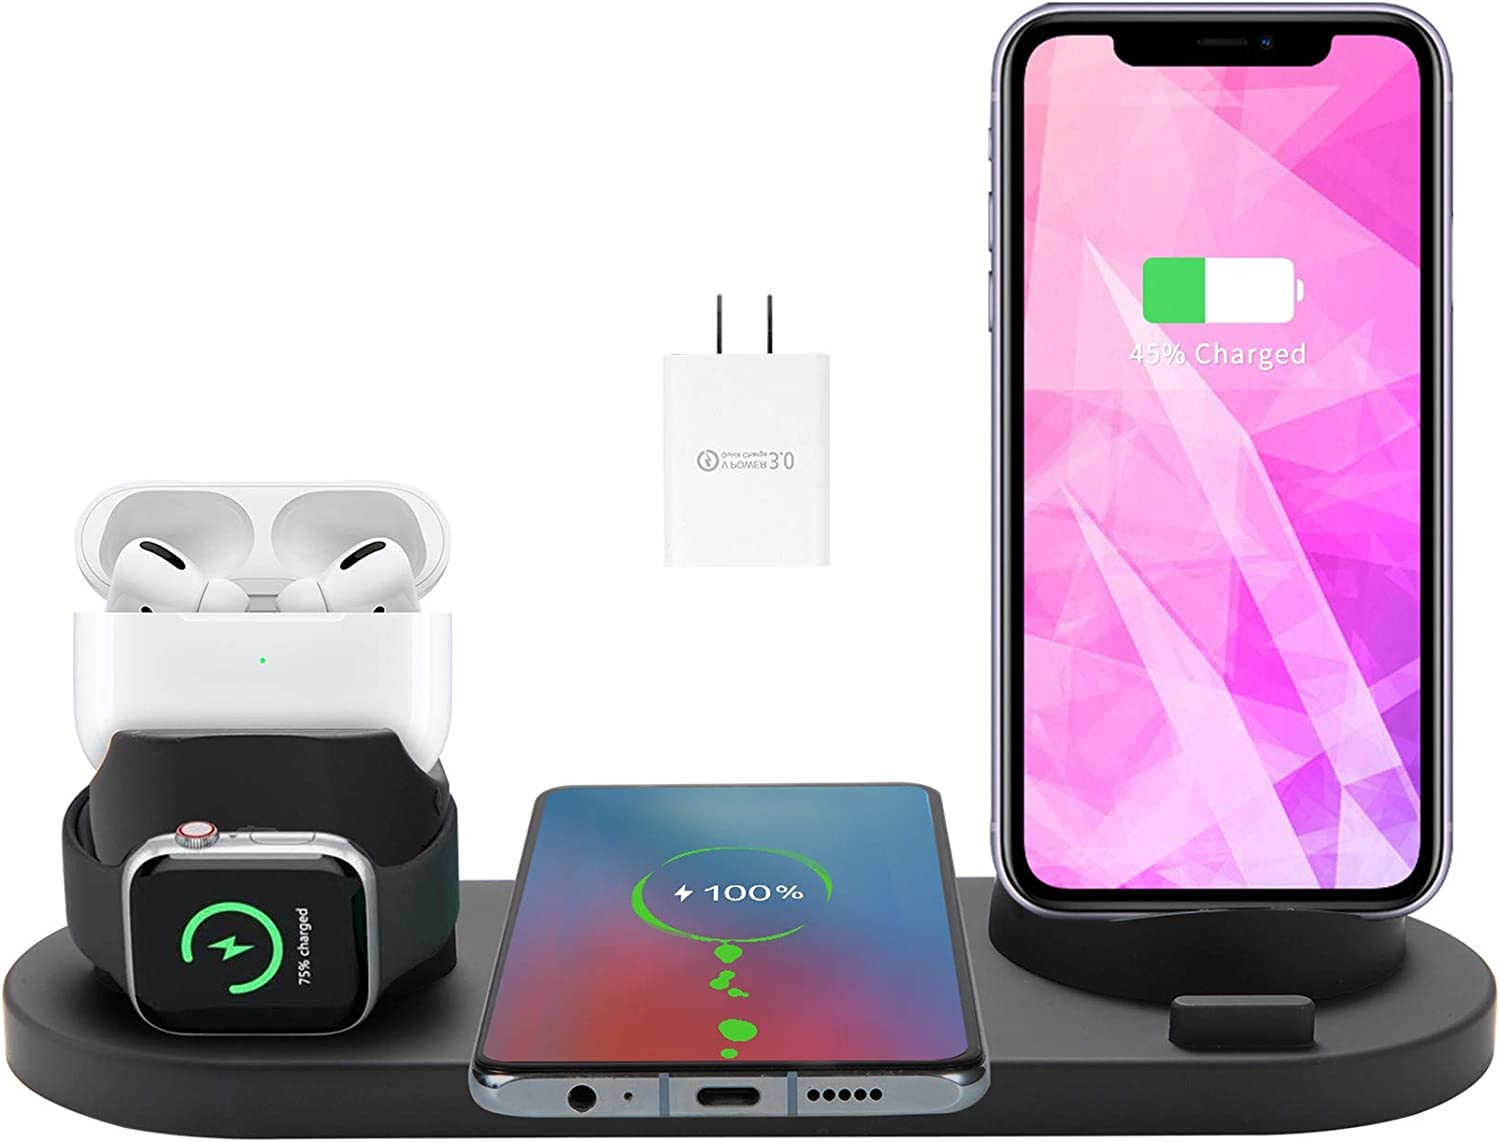 Wireless Charger,HeanYosn 4 in 1 Wireless Charger Stand,Charging Station for Multiple Devices,Qi Fast Wireless Charging Dock Compatible with iPhone 12 11 Xs XR X 8 iWatch 6 SE 5 4 Airpods Pro 2(Black)